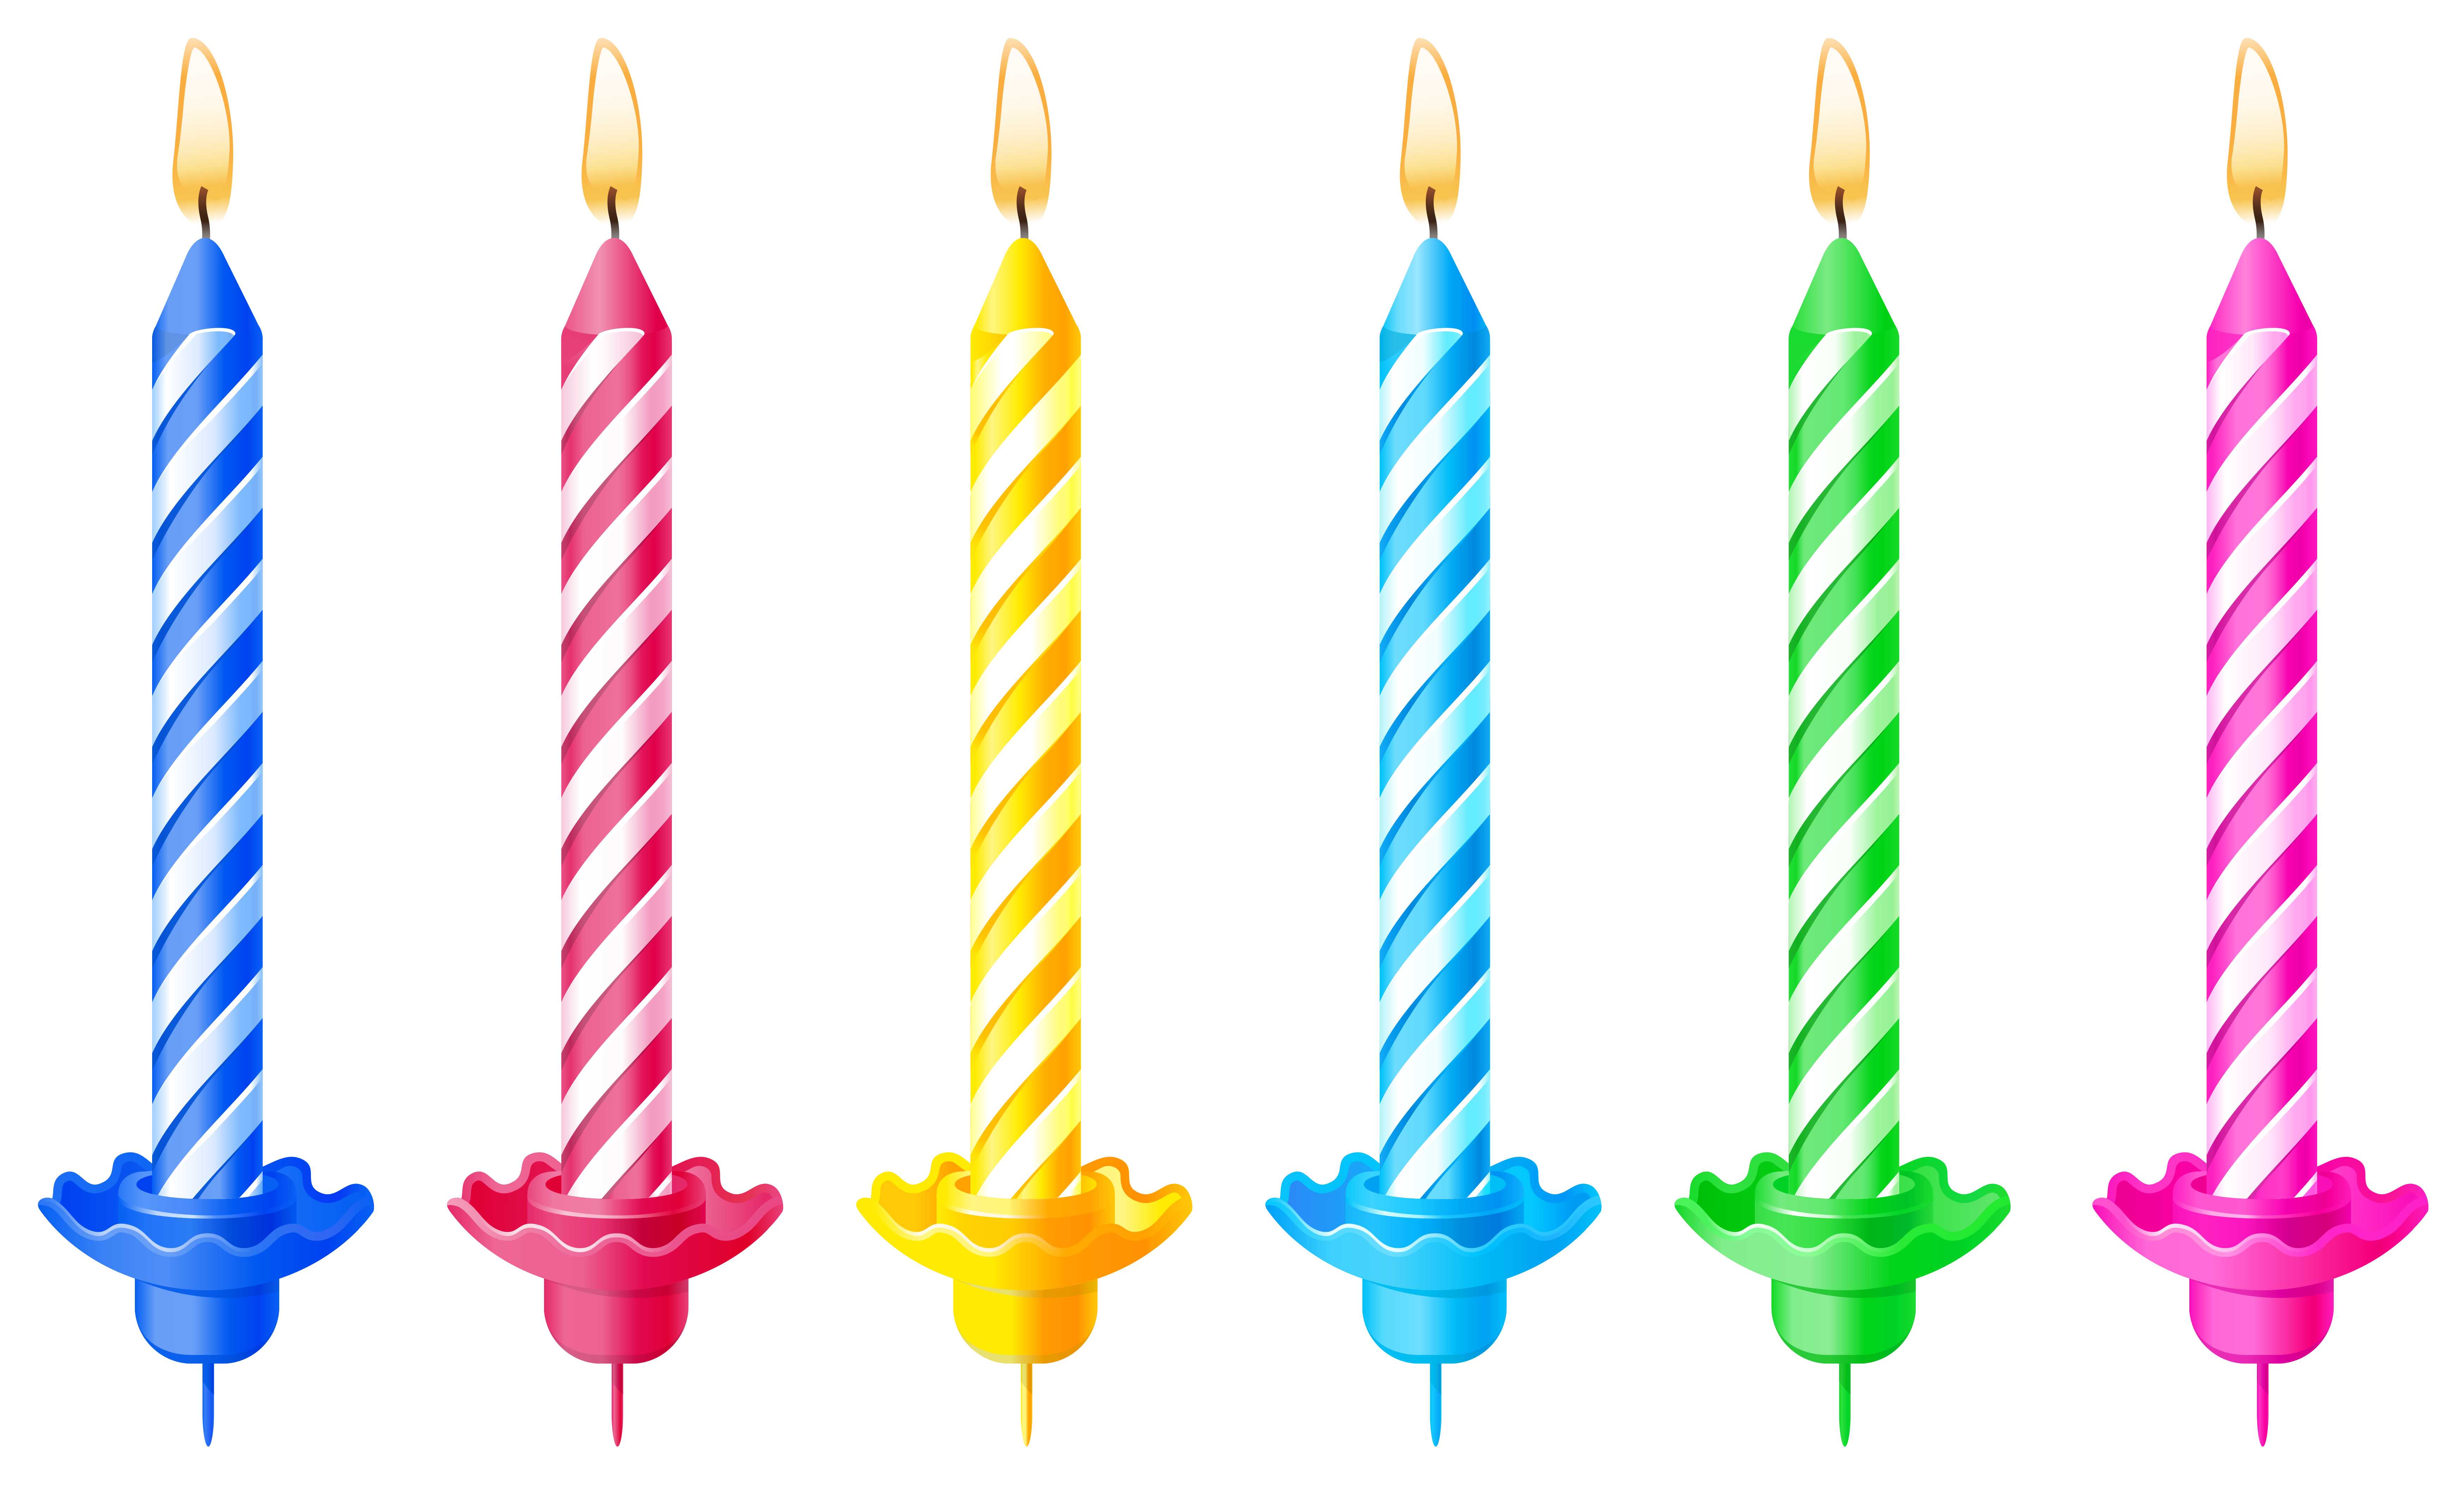 Birthday candle clipart. Clip art images riabnmt